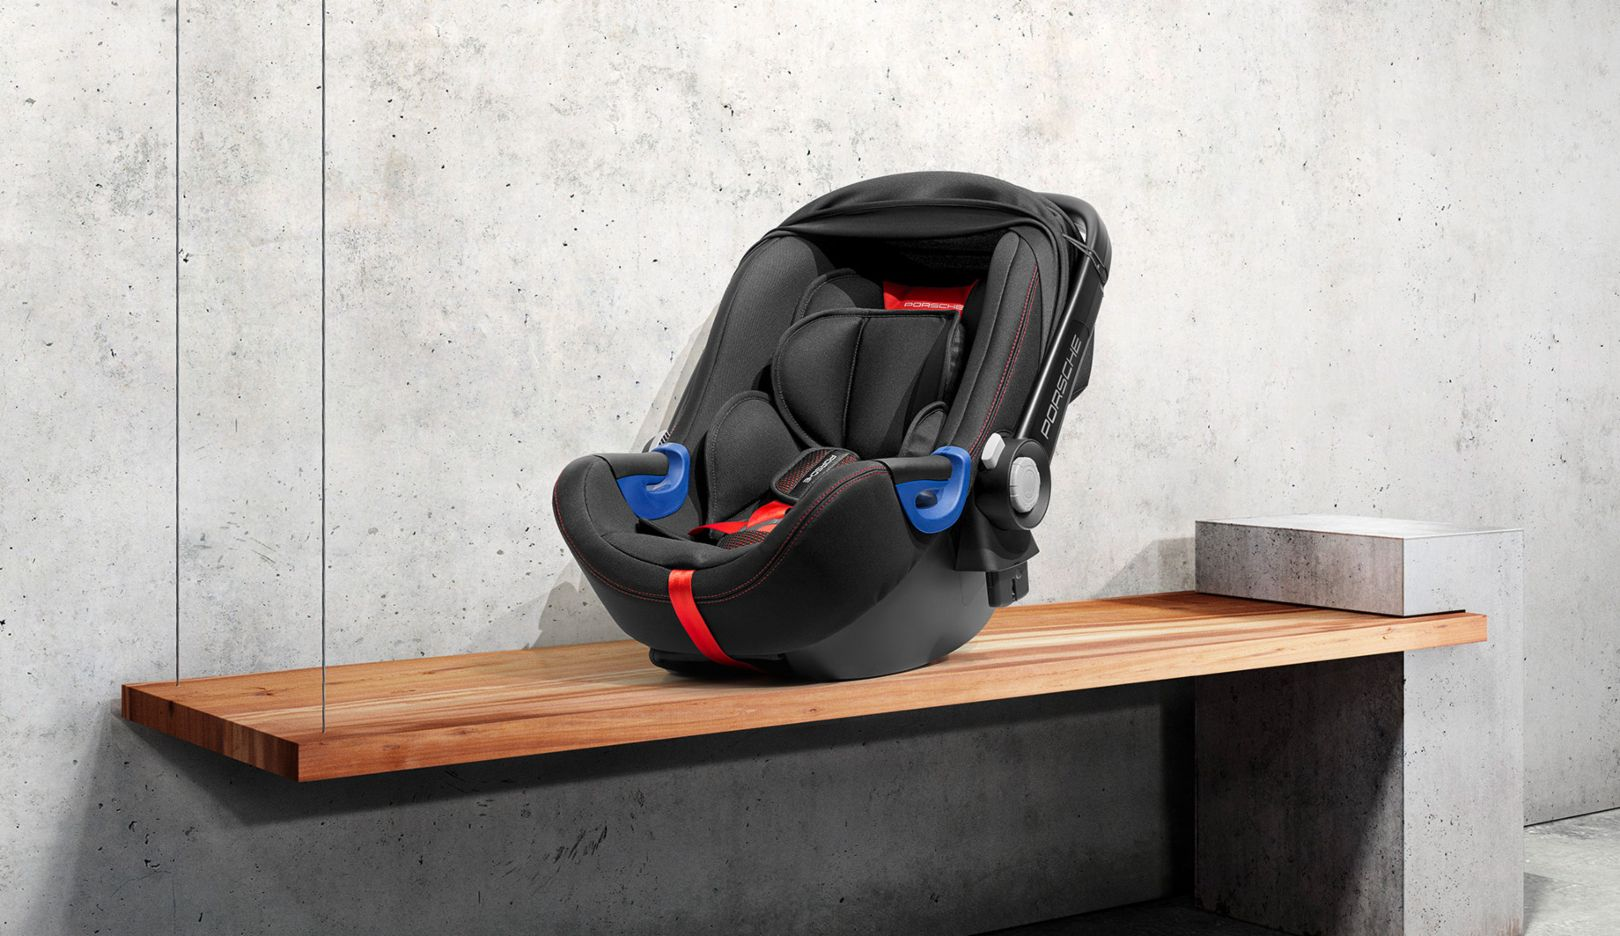 Exemplary Safety For The Youngest Porsche Fans